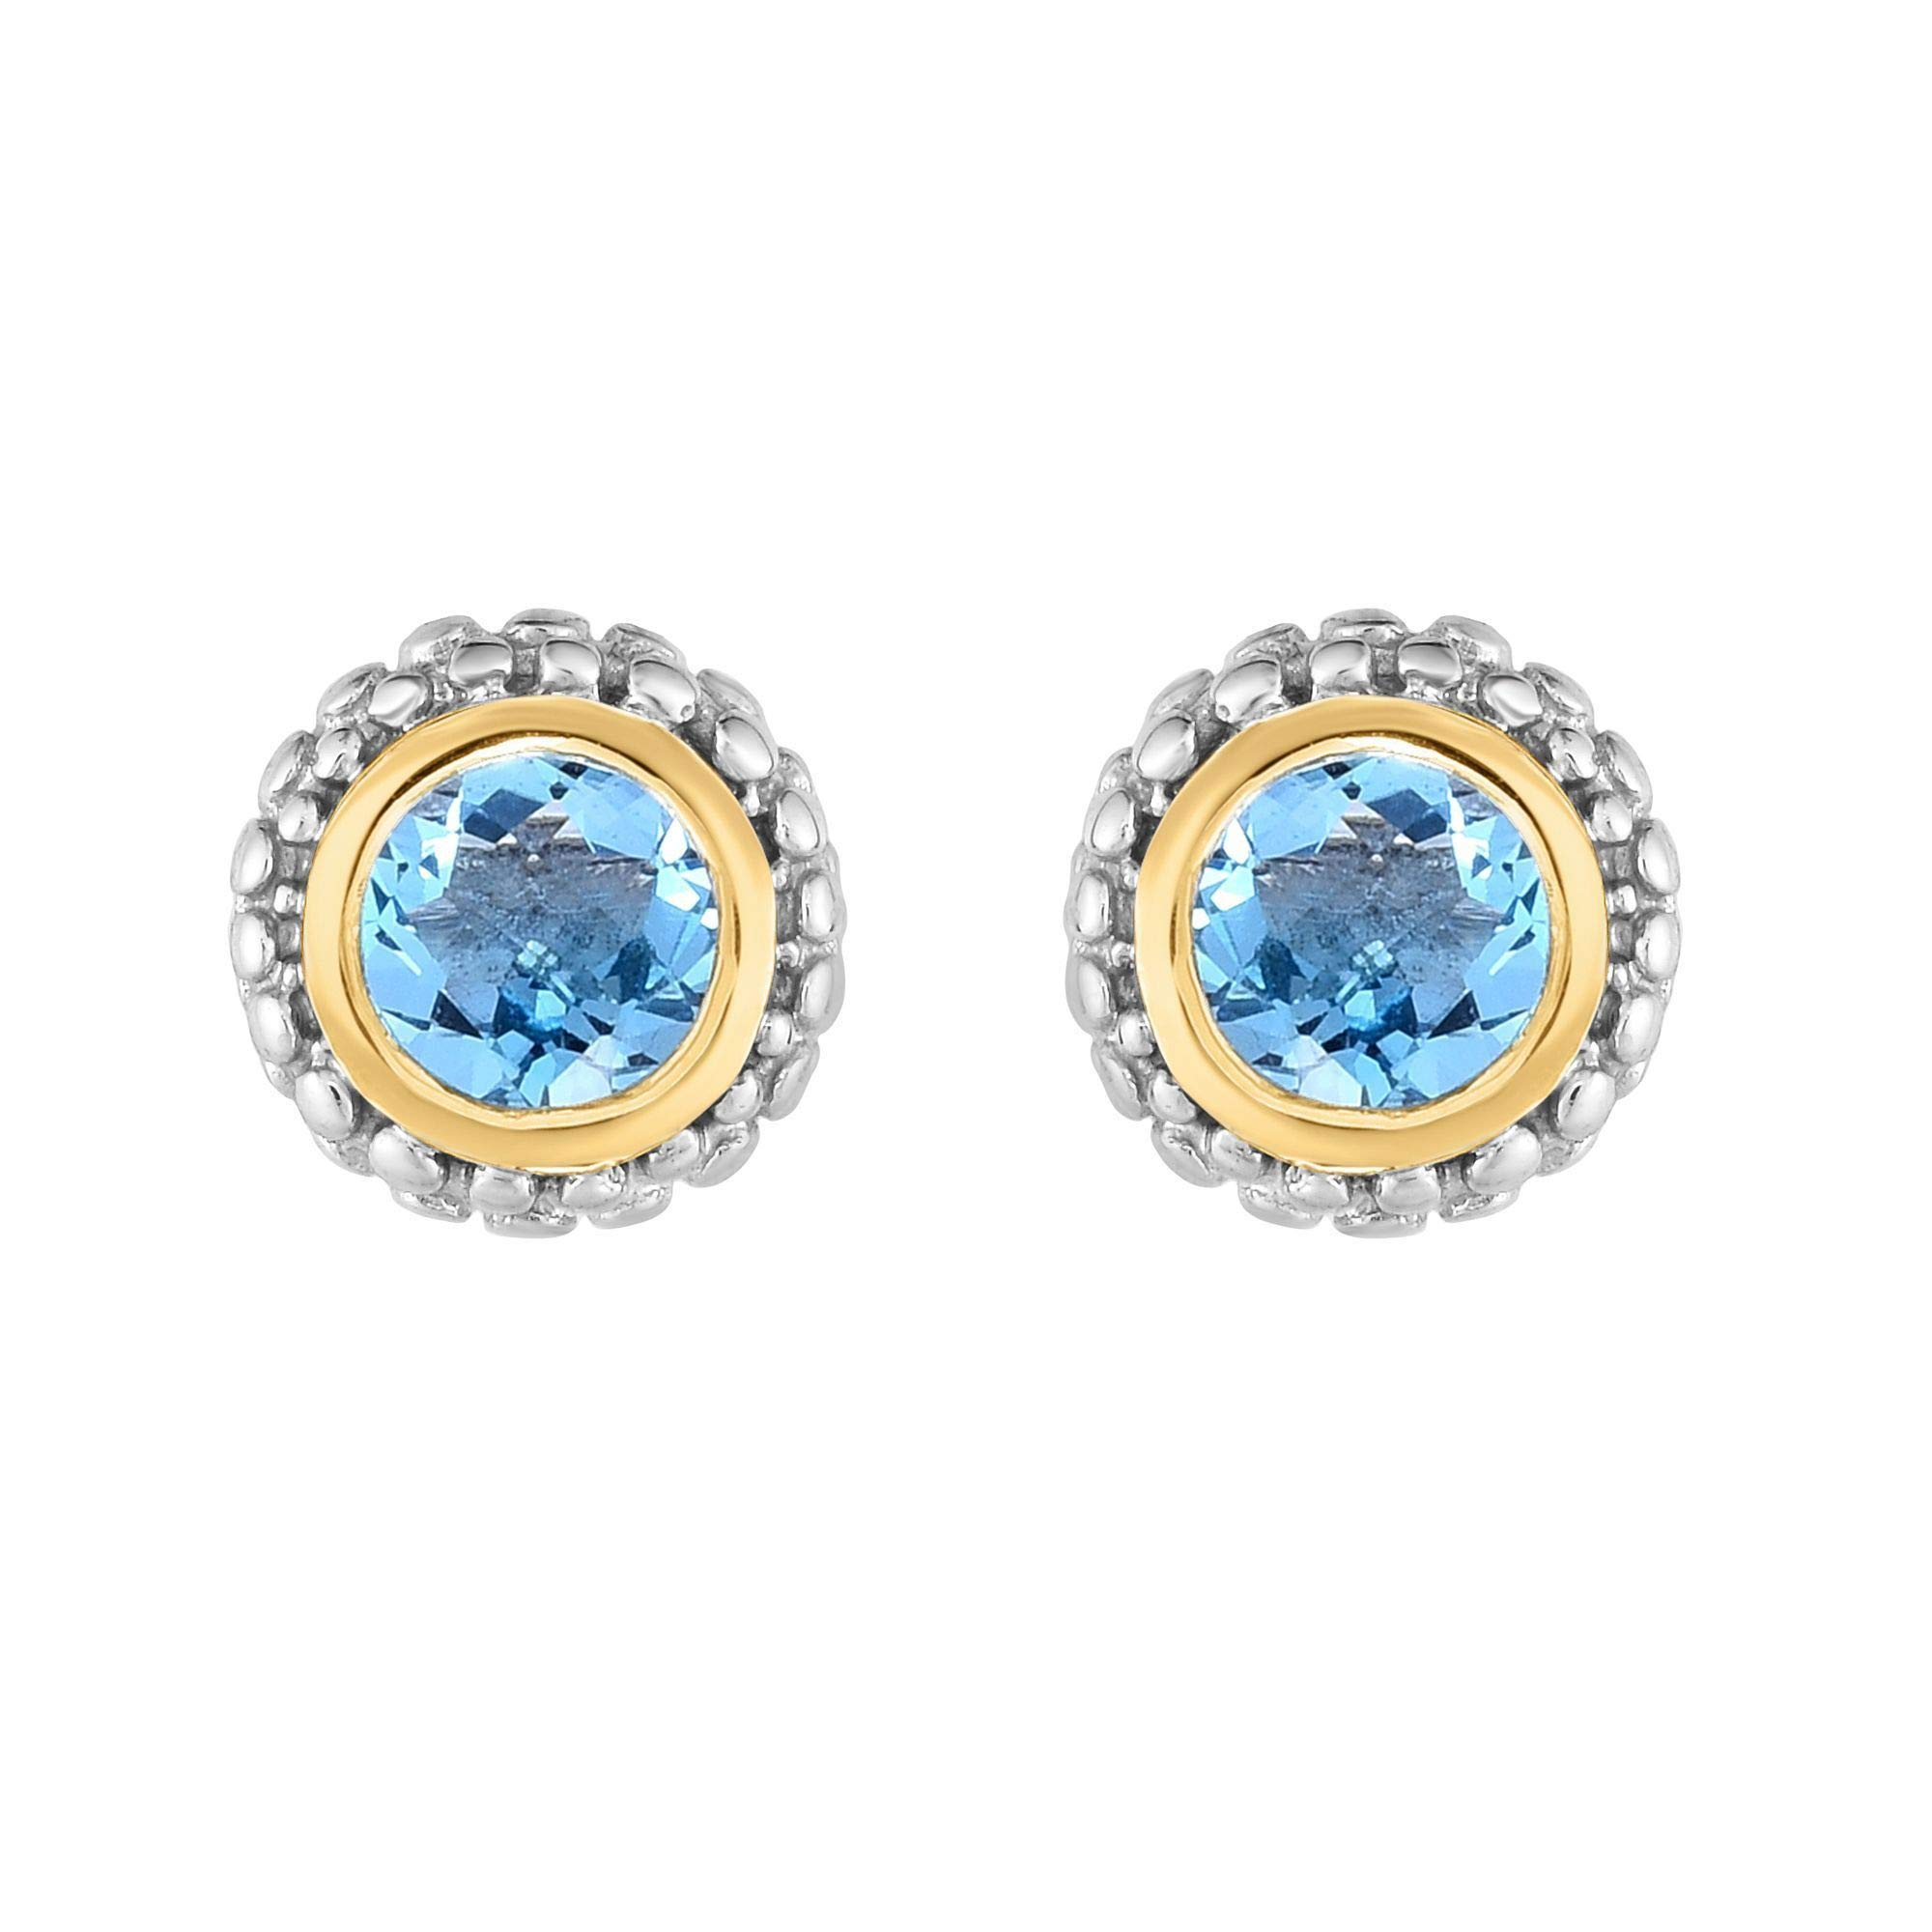 18k Gold And Sterling Silver Blue Topaz Stud Earrings